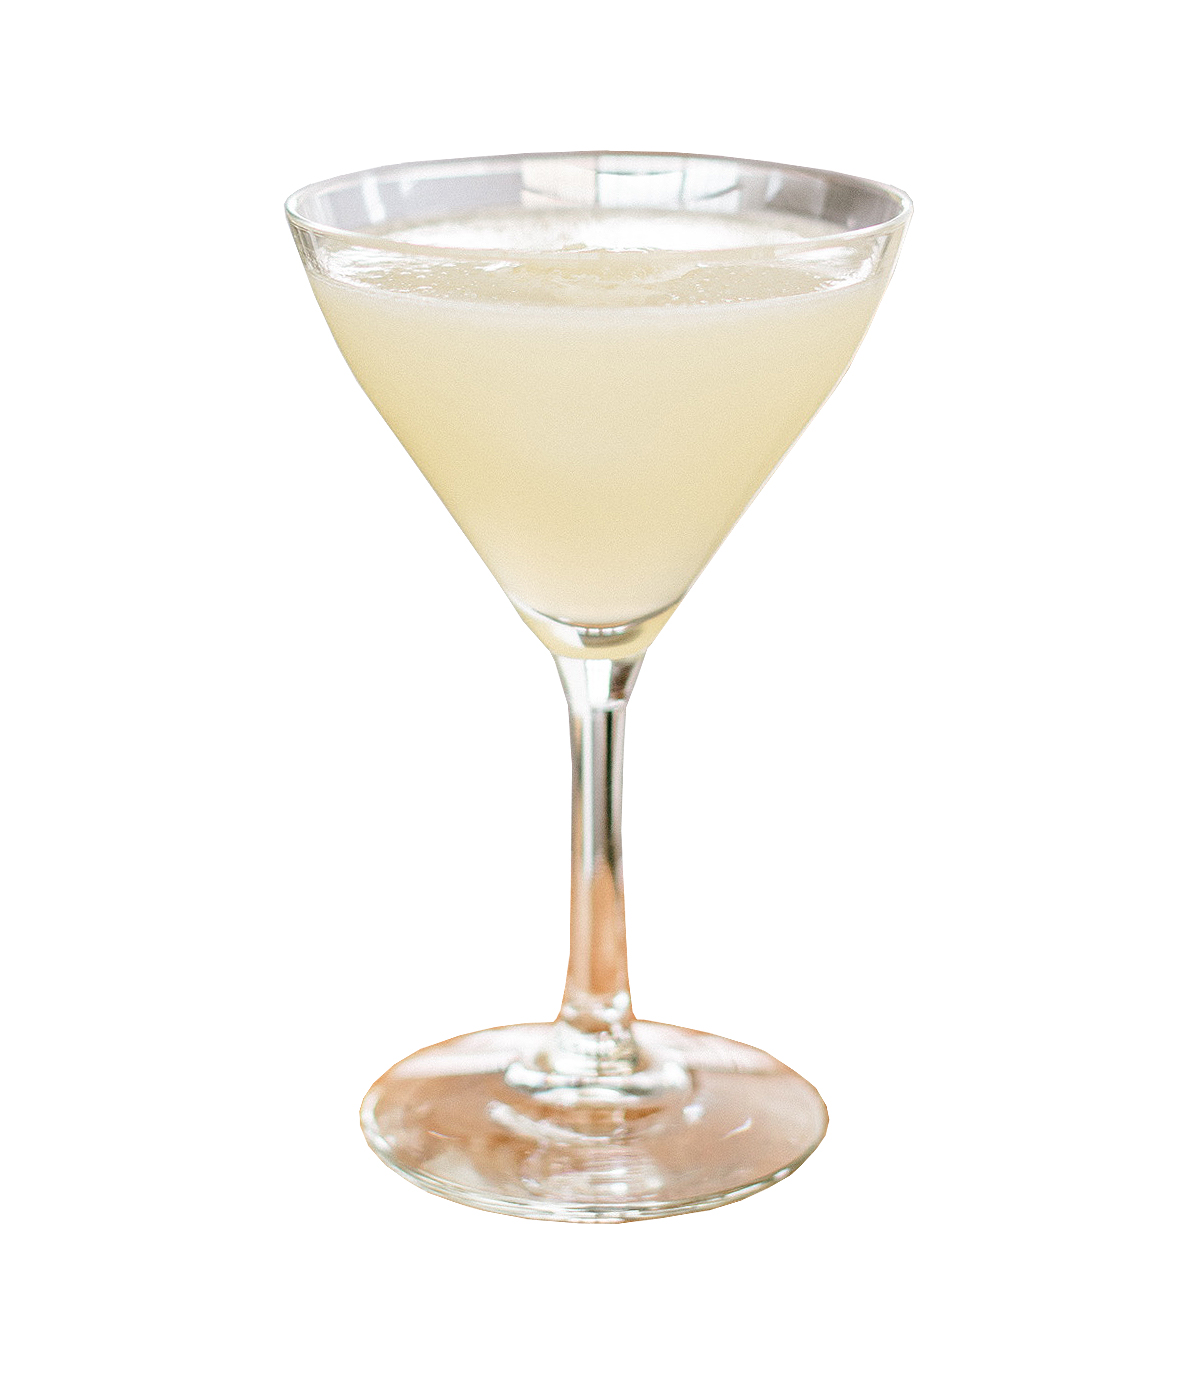 PINEAPPLE DAIQUIRI  15mL Simple Syrup 30mL Fresh Lime Juice  30mL Norseman Barrel-Aged Rum 40ml Norseman Pineapple Rum  Shake and strain into a coupe glass. Garnish with an ice cube.